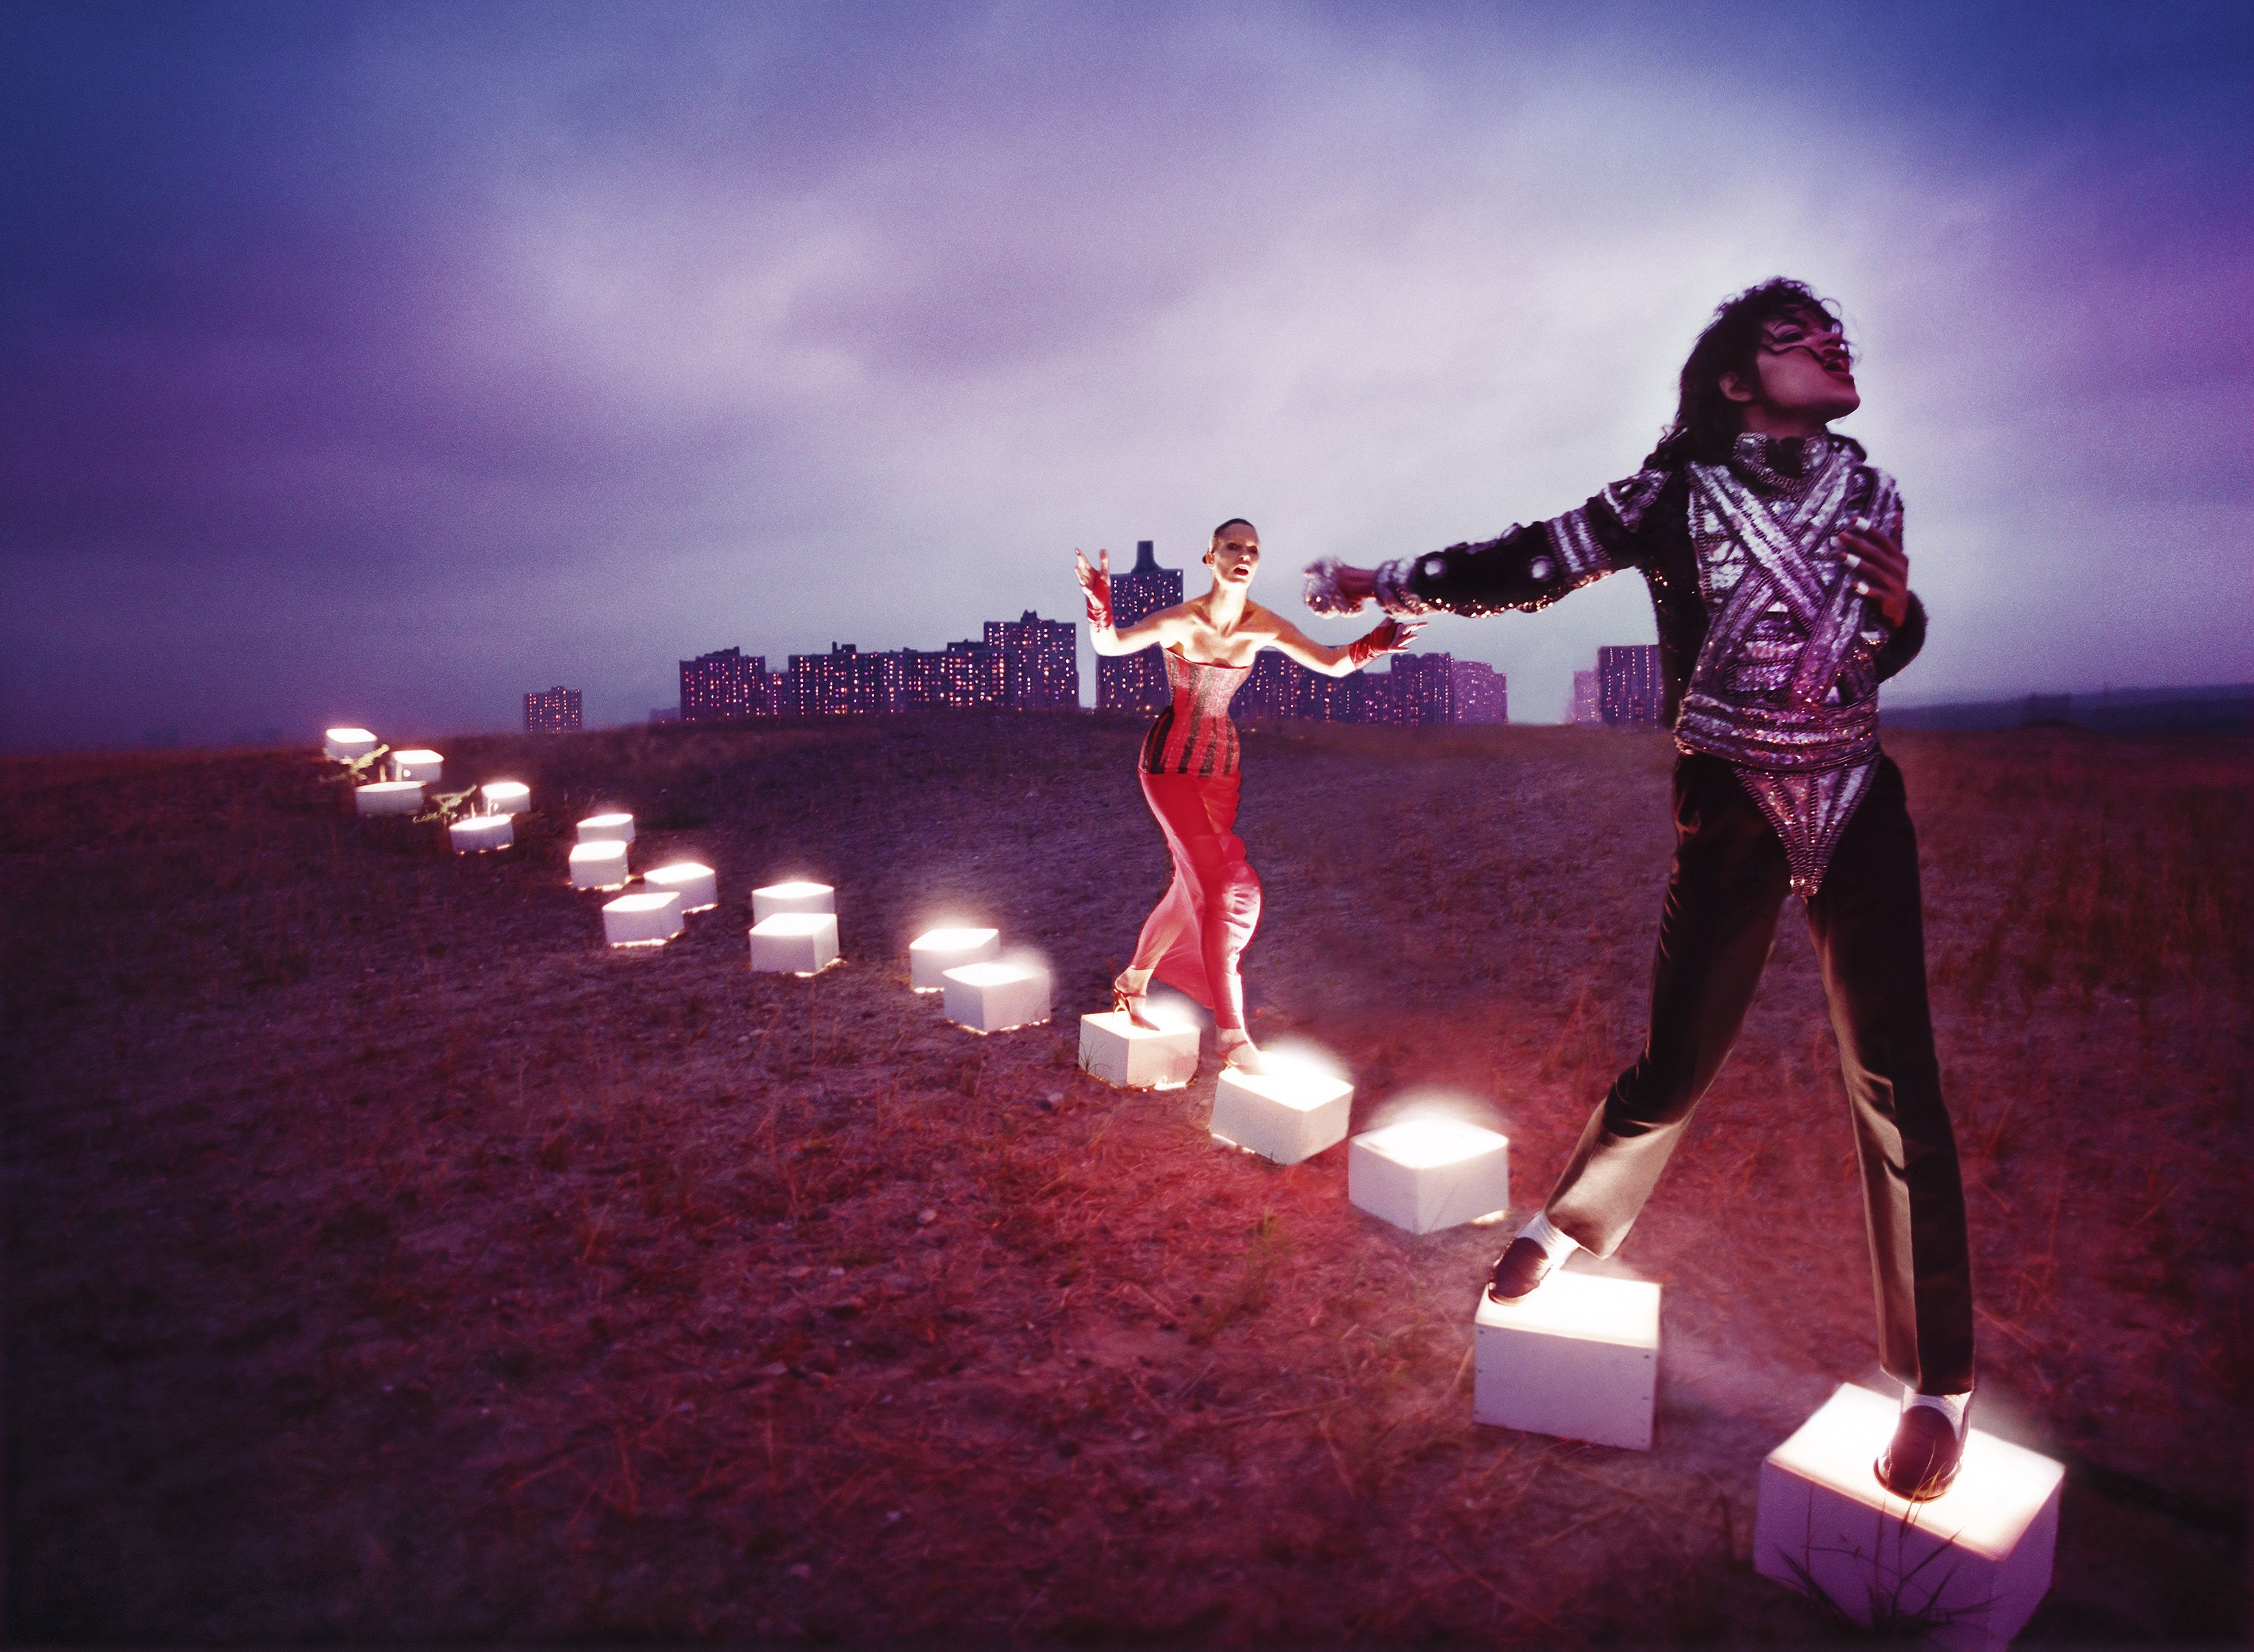 michael-jackson-on-the-wall-exhibition-national-portrait-gallery-london-until-21-october-2018.jpg